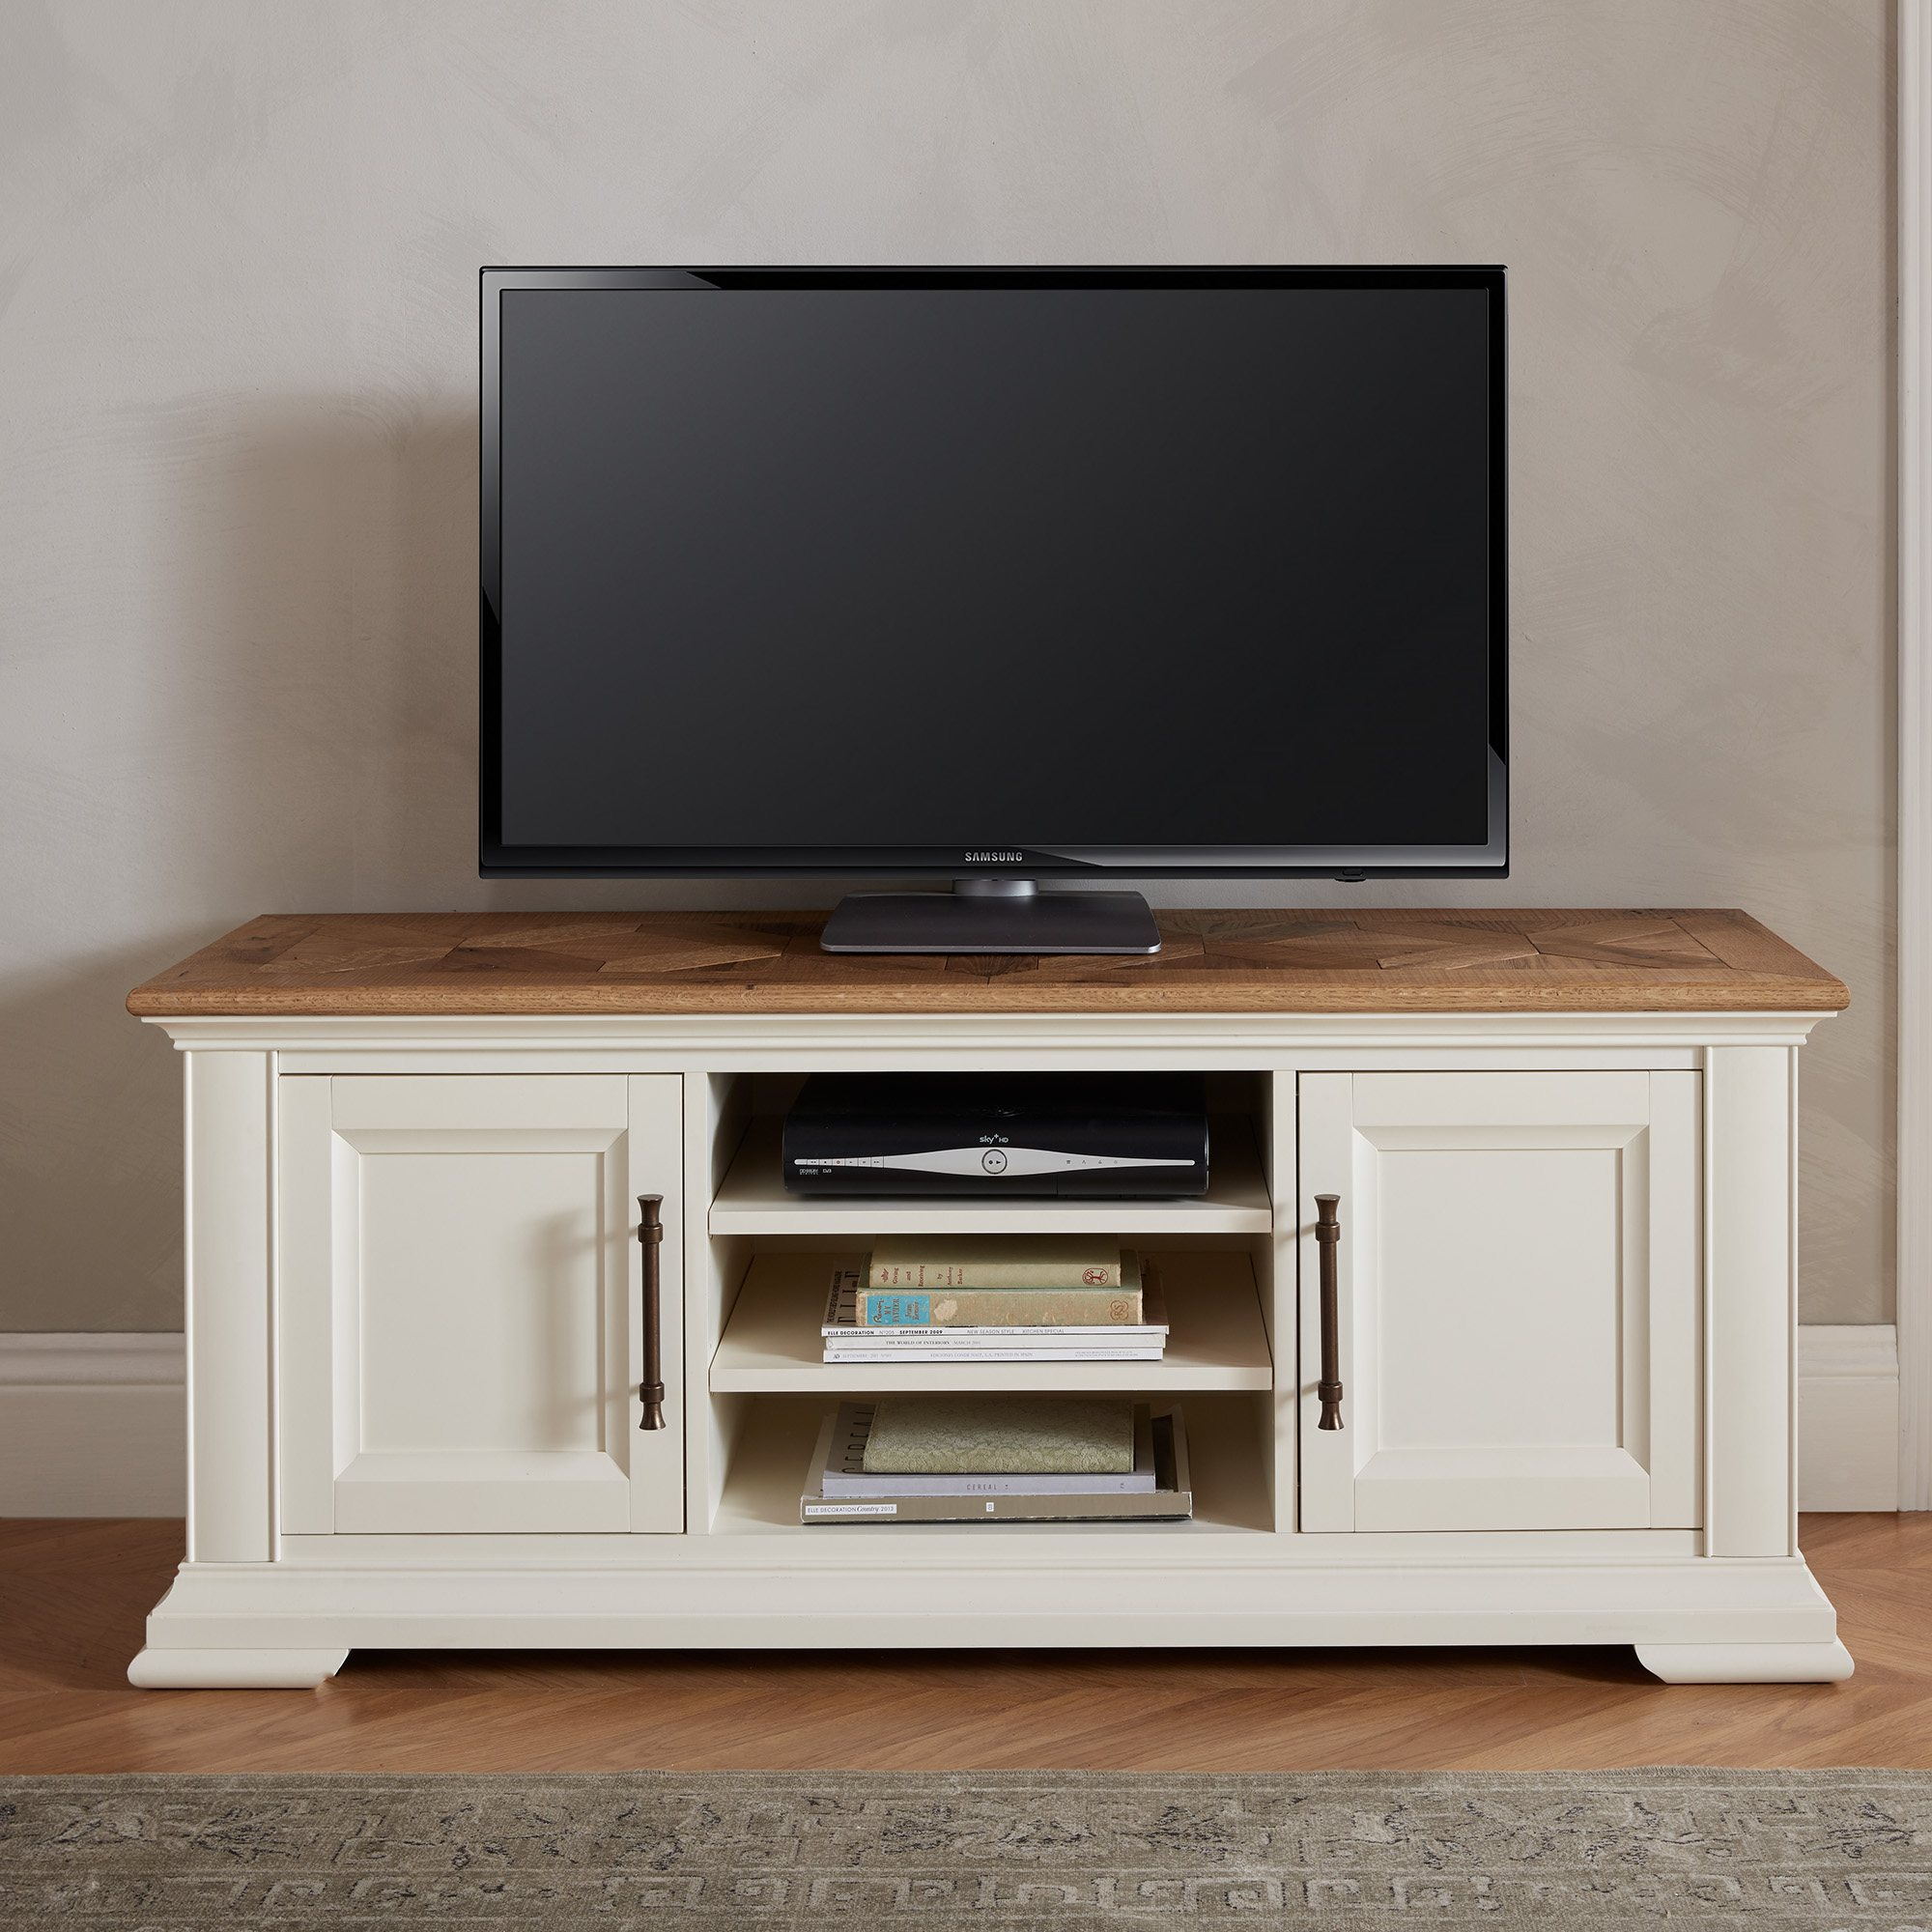 HIGHLAND TV UNIT - L138cm x D44cm x H57cm